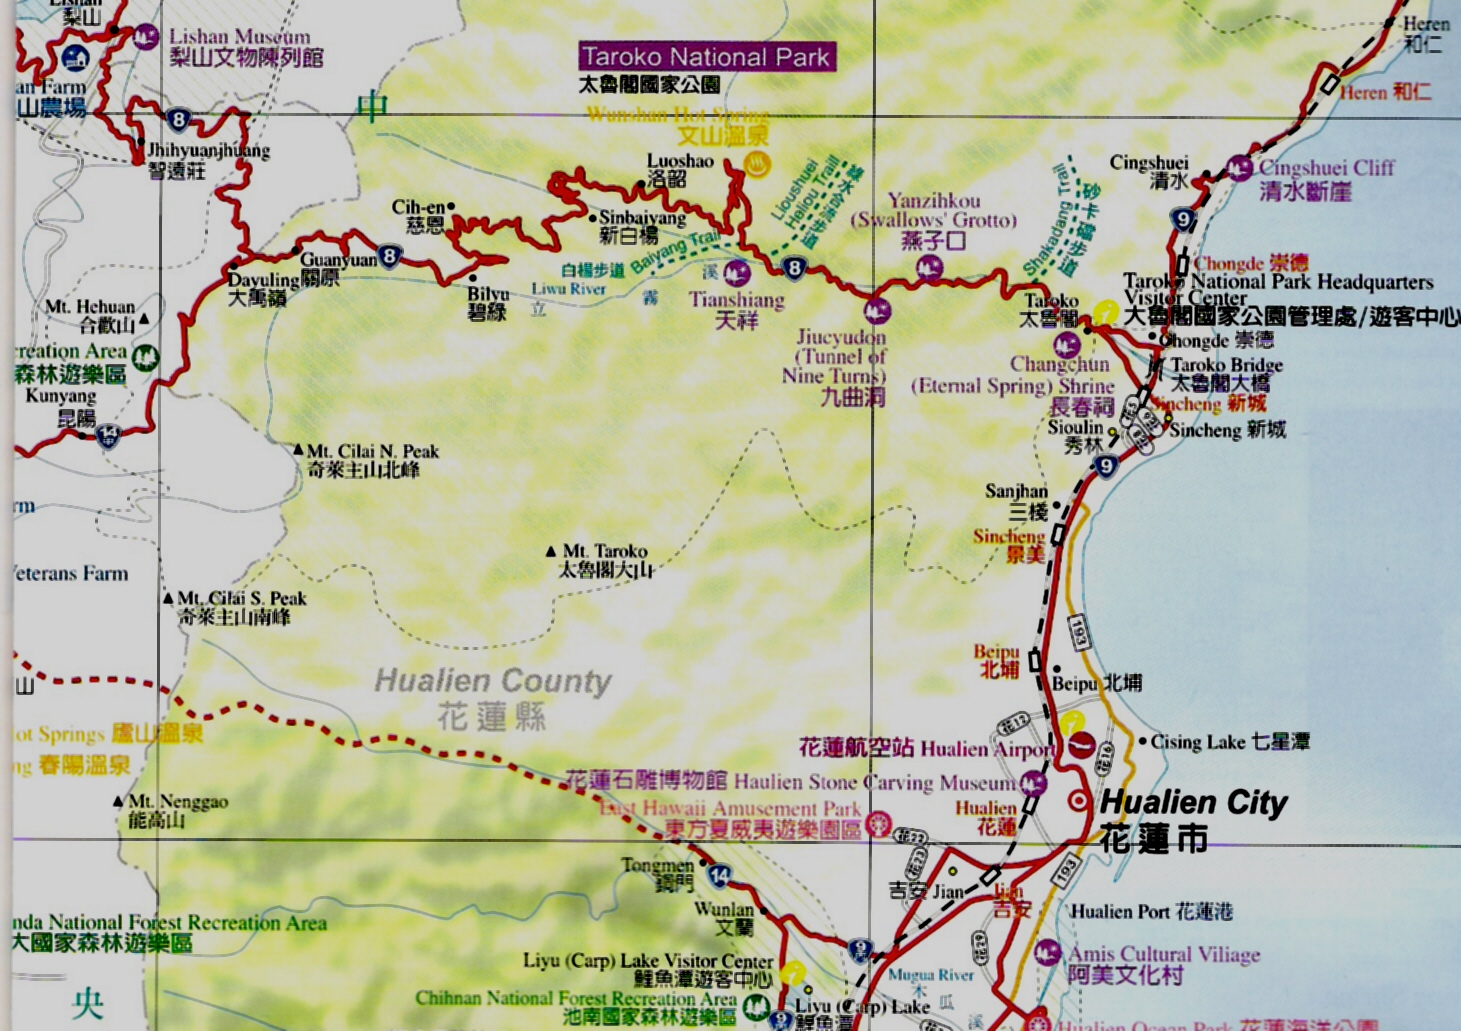 Foxconn Said To Be Considering Investment In American Manufacturing besides Taroko National Park Map 2 in addition K98 00 Okinawa Pref together with  likewise Travel Alishan Forest Railway Taiwan. on taiwan transportation map